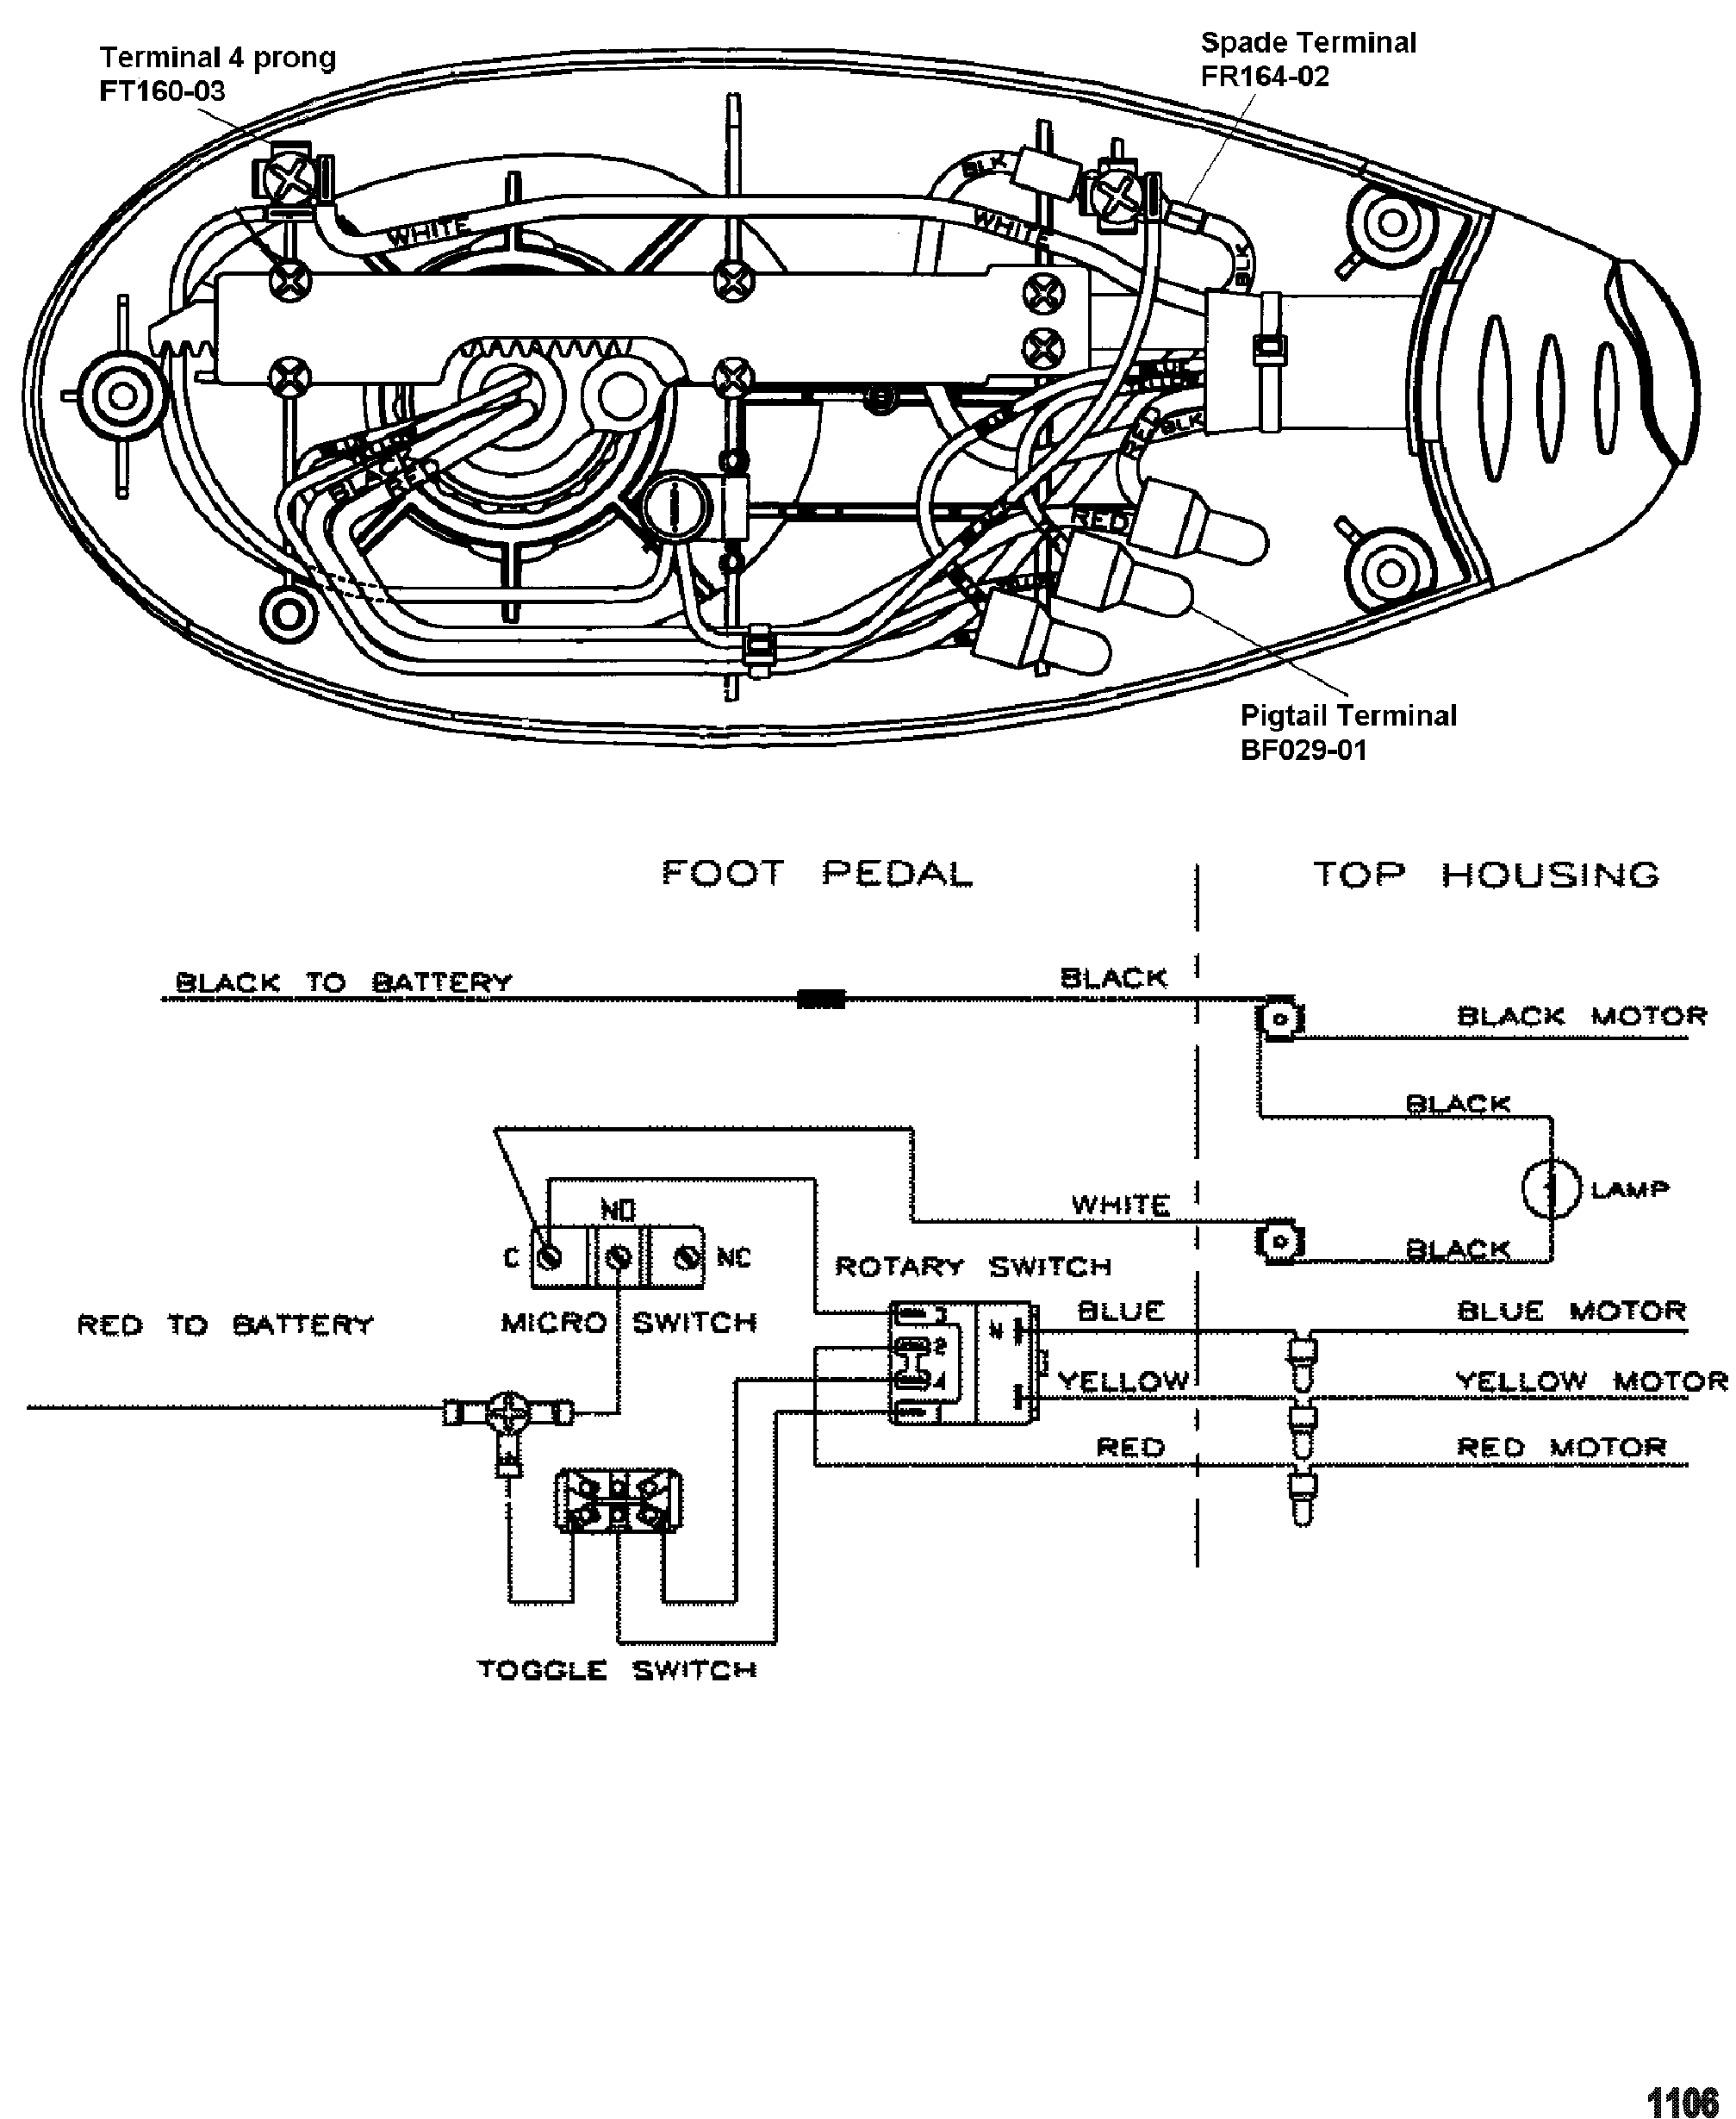 Trolling Motor Plug Wiring Diagram Motorguide 45 Ranger 1106 Diagrams 600338 12 24 At Cita